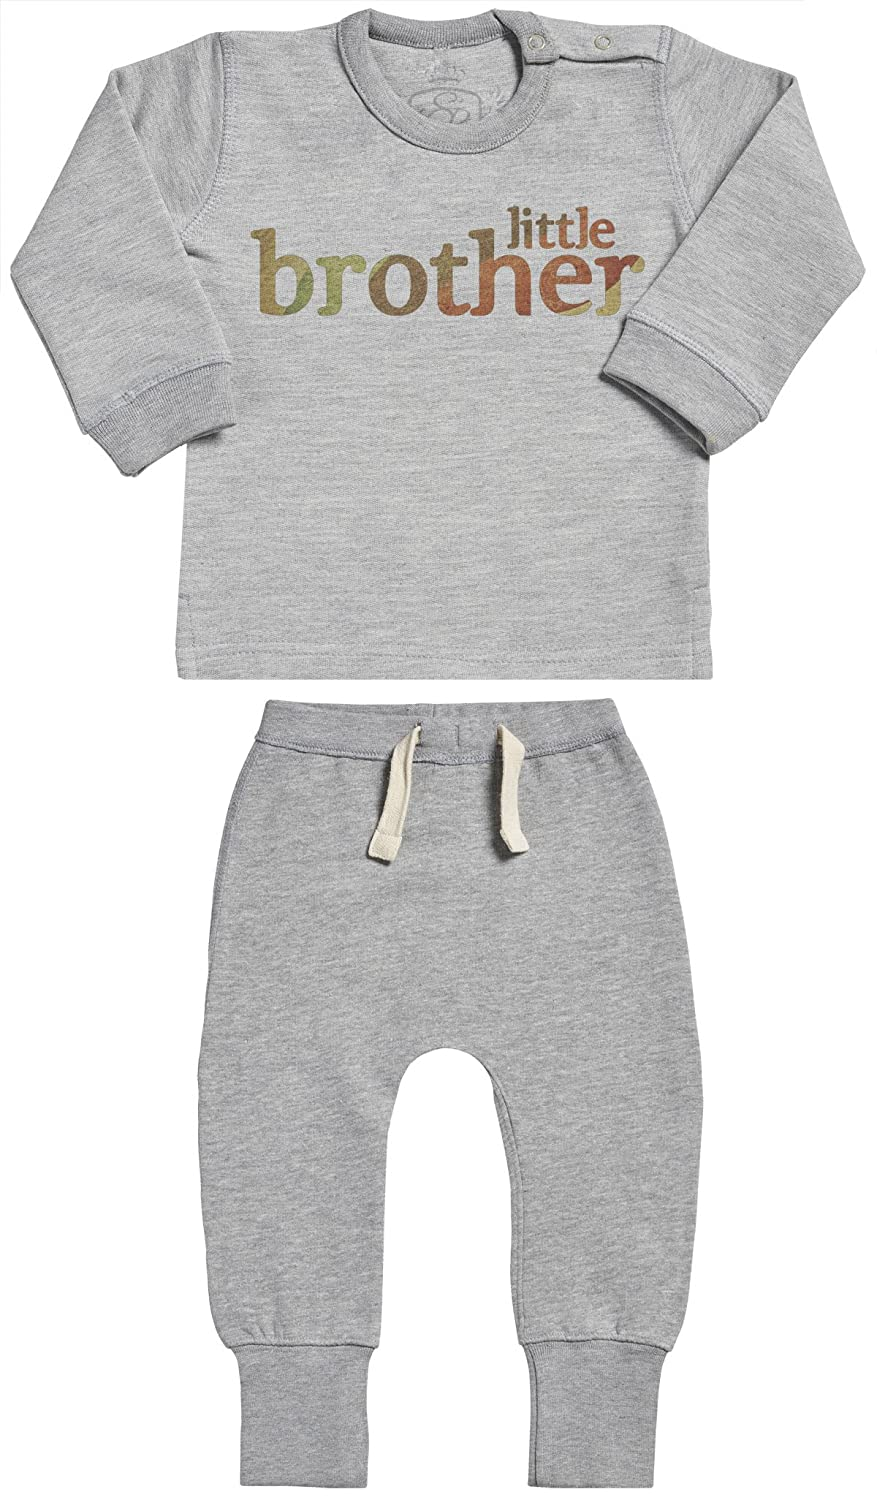 Little Brother Baby Outfit Baby Sweater /& Baby Joggers Baby Gift Set Baby Clothing Outfit SR